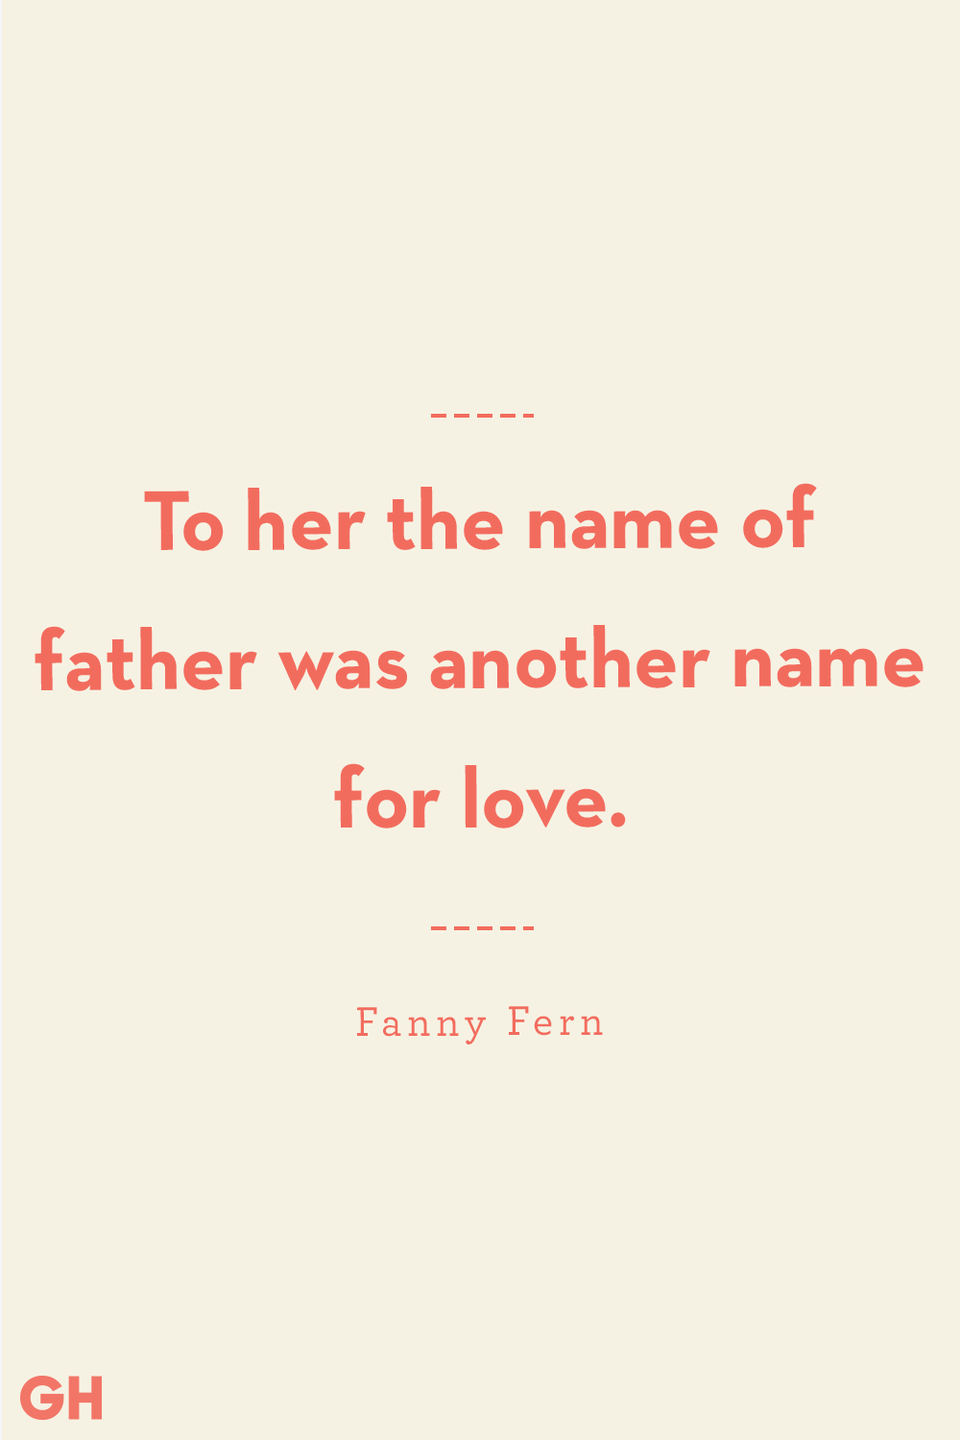 <p>To her the name of father was another name for love.</p>